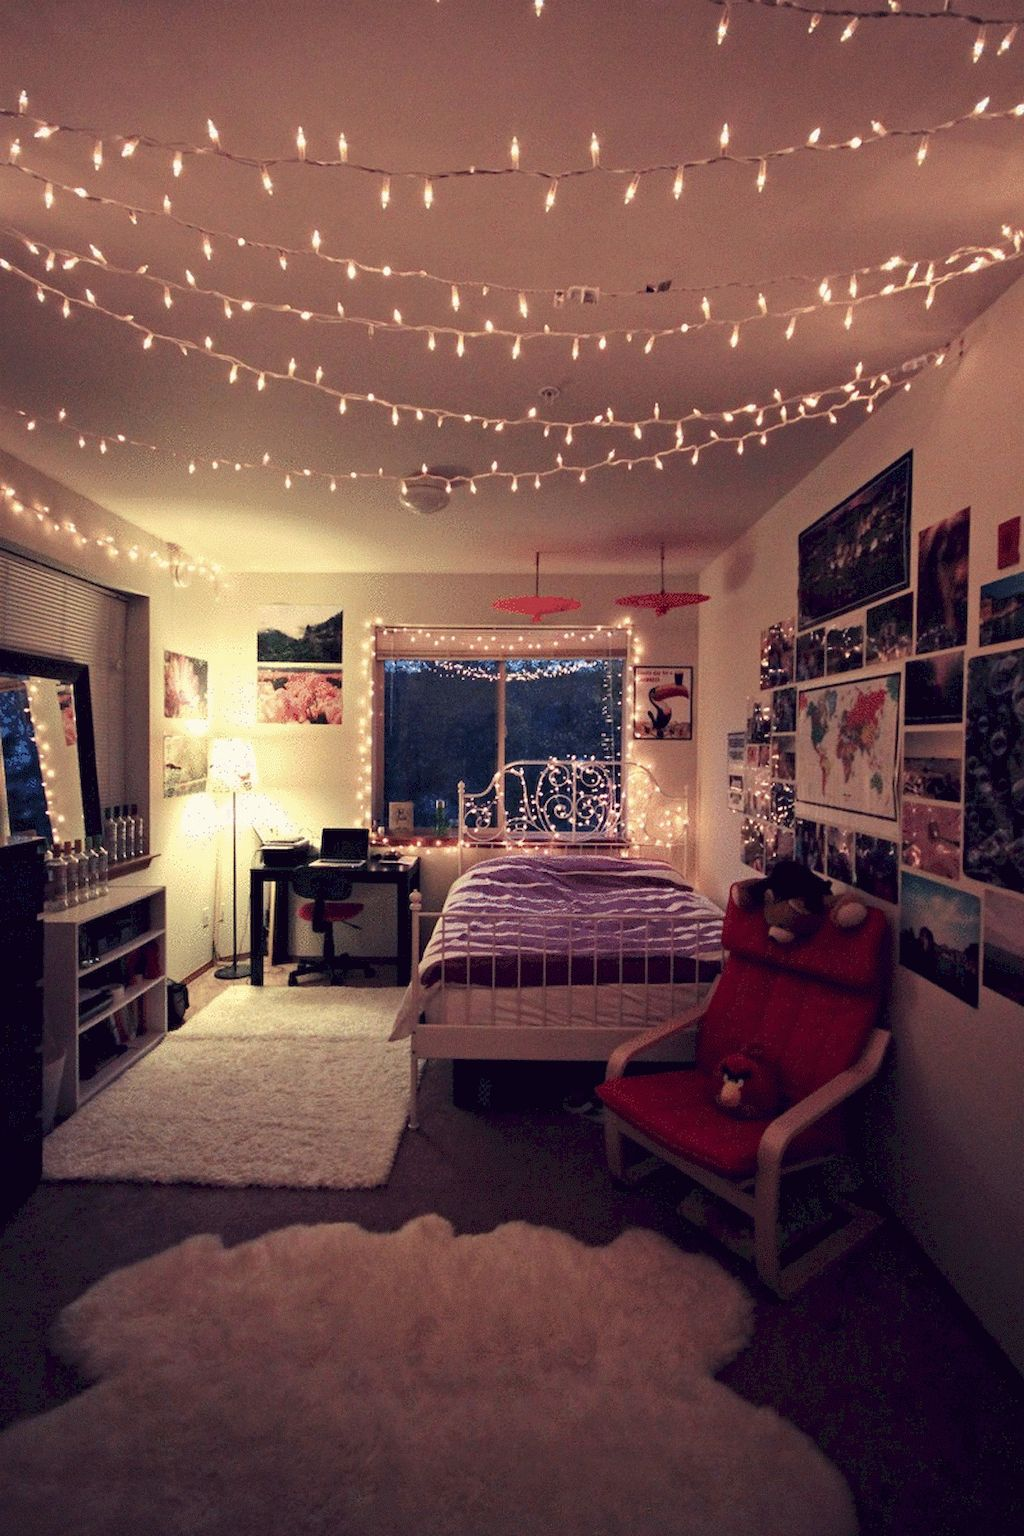 Wonderful Picture Of College Apartment Room Decorating College Apartment Room Decorating Decorate College Apartm Dream Rooms Bedroom Vintage Awesome Bedrooms